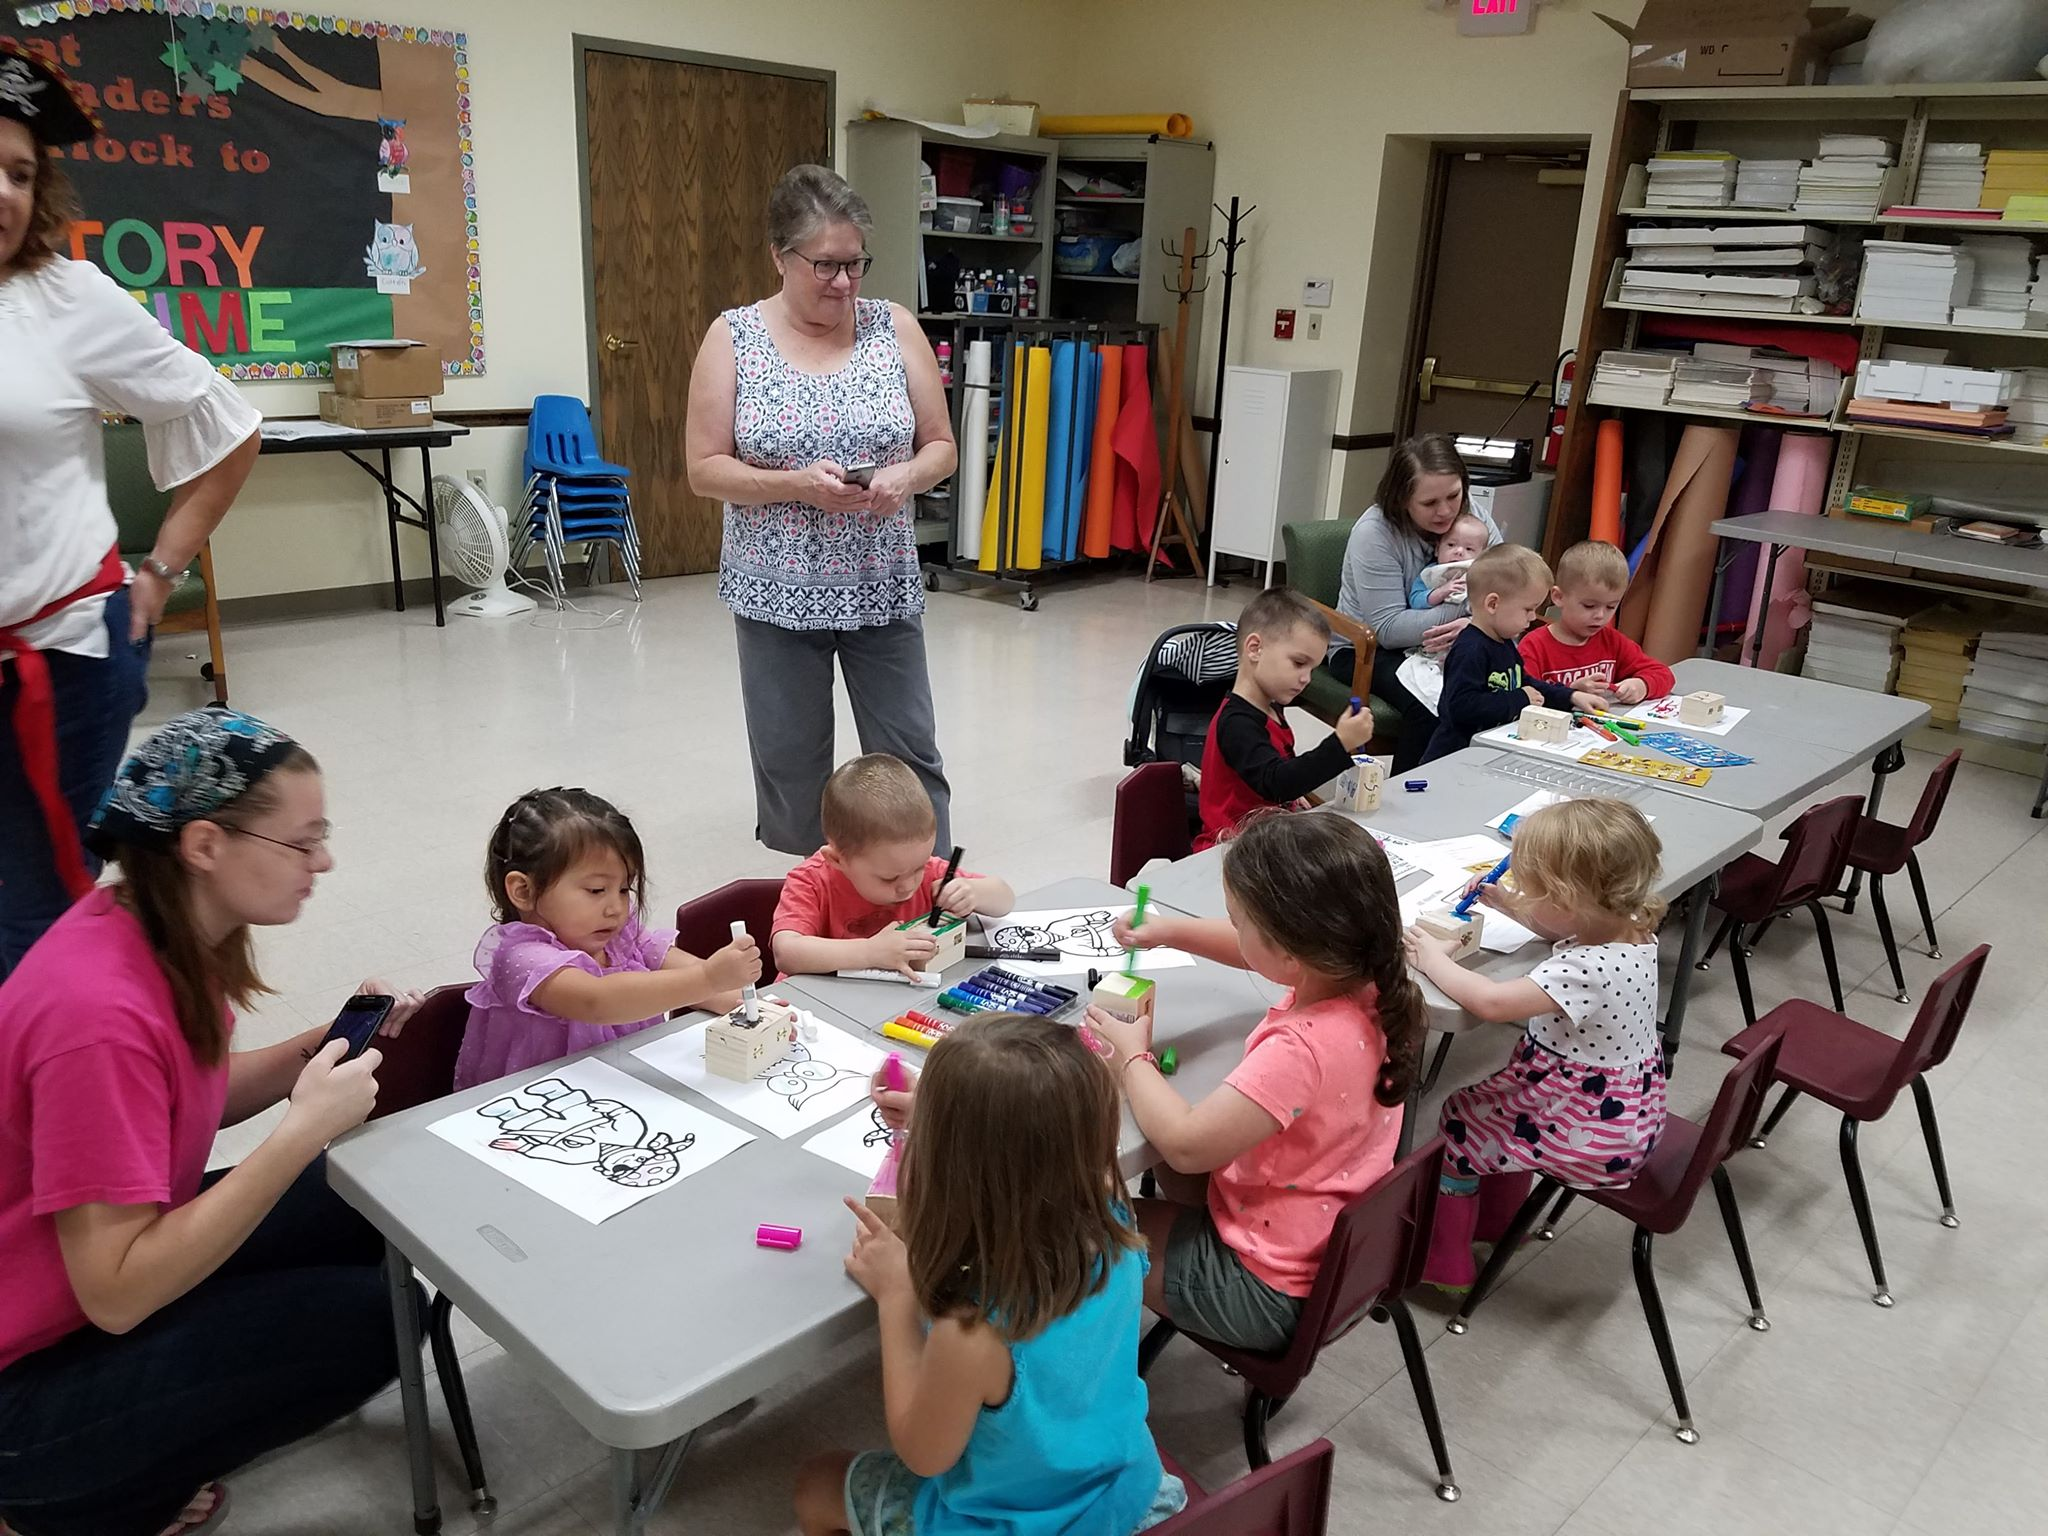 A fun time was had by participants during crafting of our Storytime event.